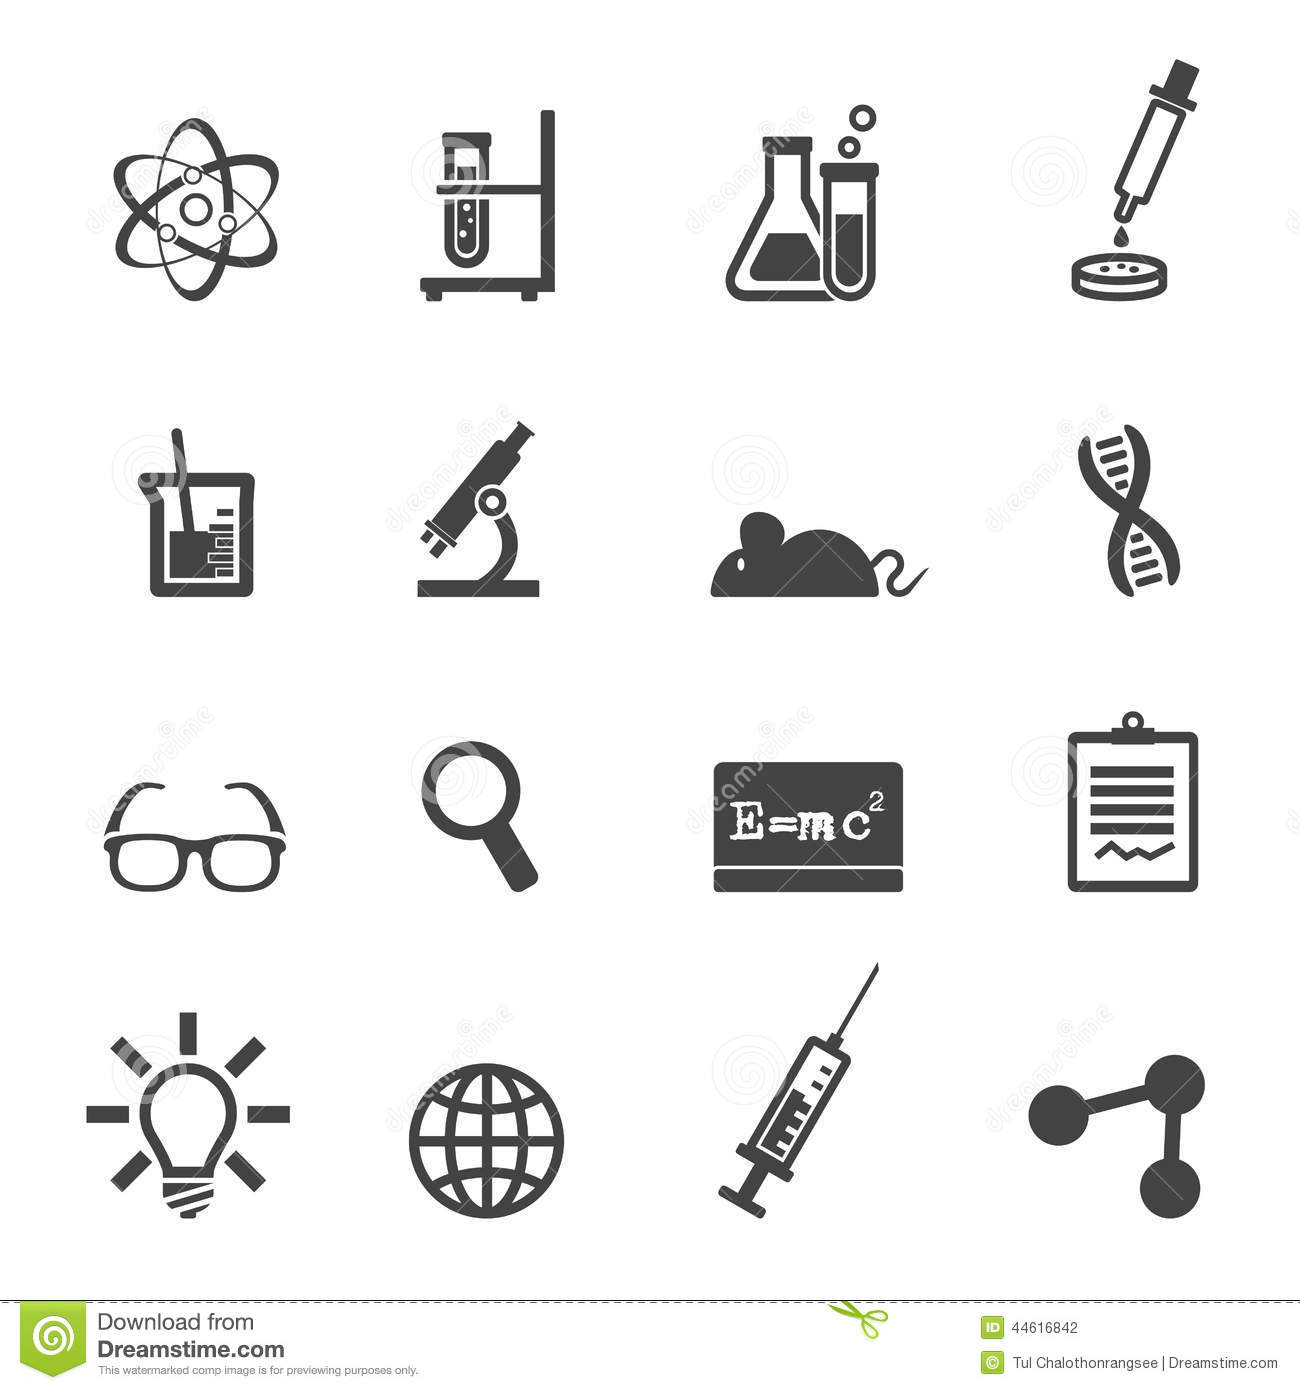 Glueckliche Monster Kreatur Mit Glaskolben additionally Coloriages Matériel De Laboratoire A Colorier moreover Erlenmeyer Flask Laboratory Conical 303336 additionally 1147532list besides Laboratory 20clipart 20science 20teacher. on science flask